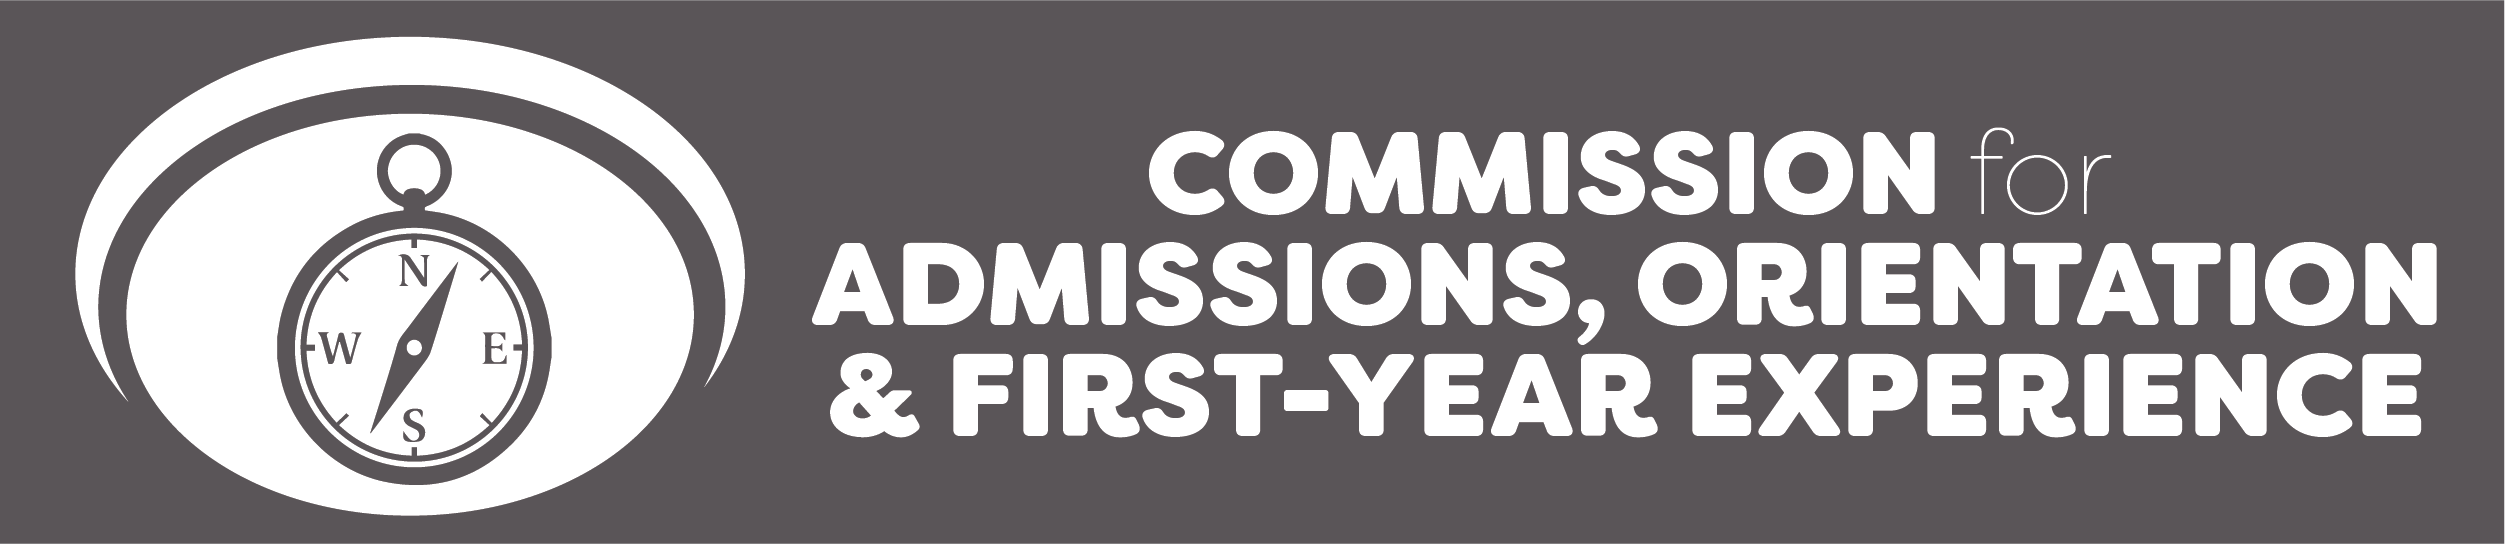 Commission for Admission, Orientation & First-Year Experience logo with a compass